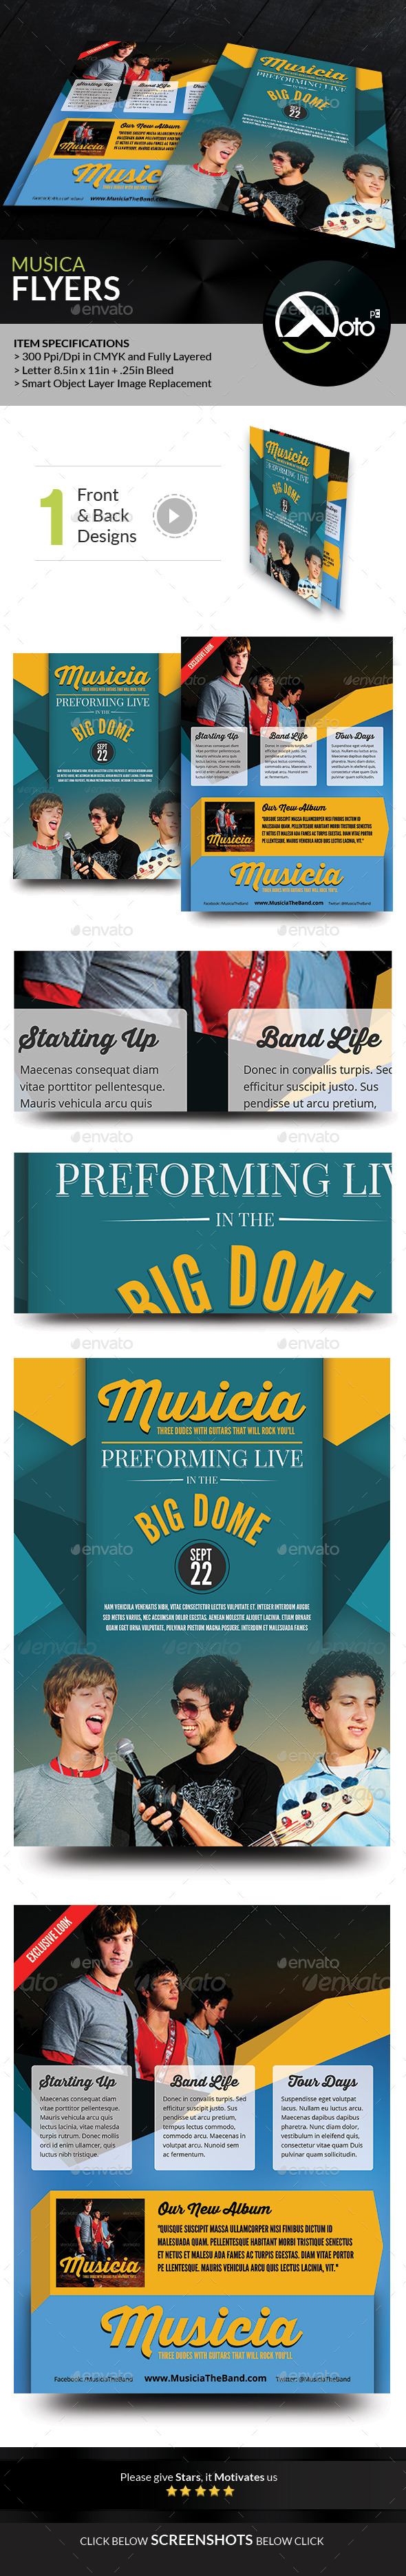 GraphicRiver Musica Artist Profile Flyers 8815270